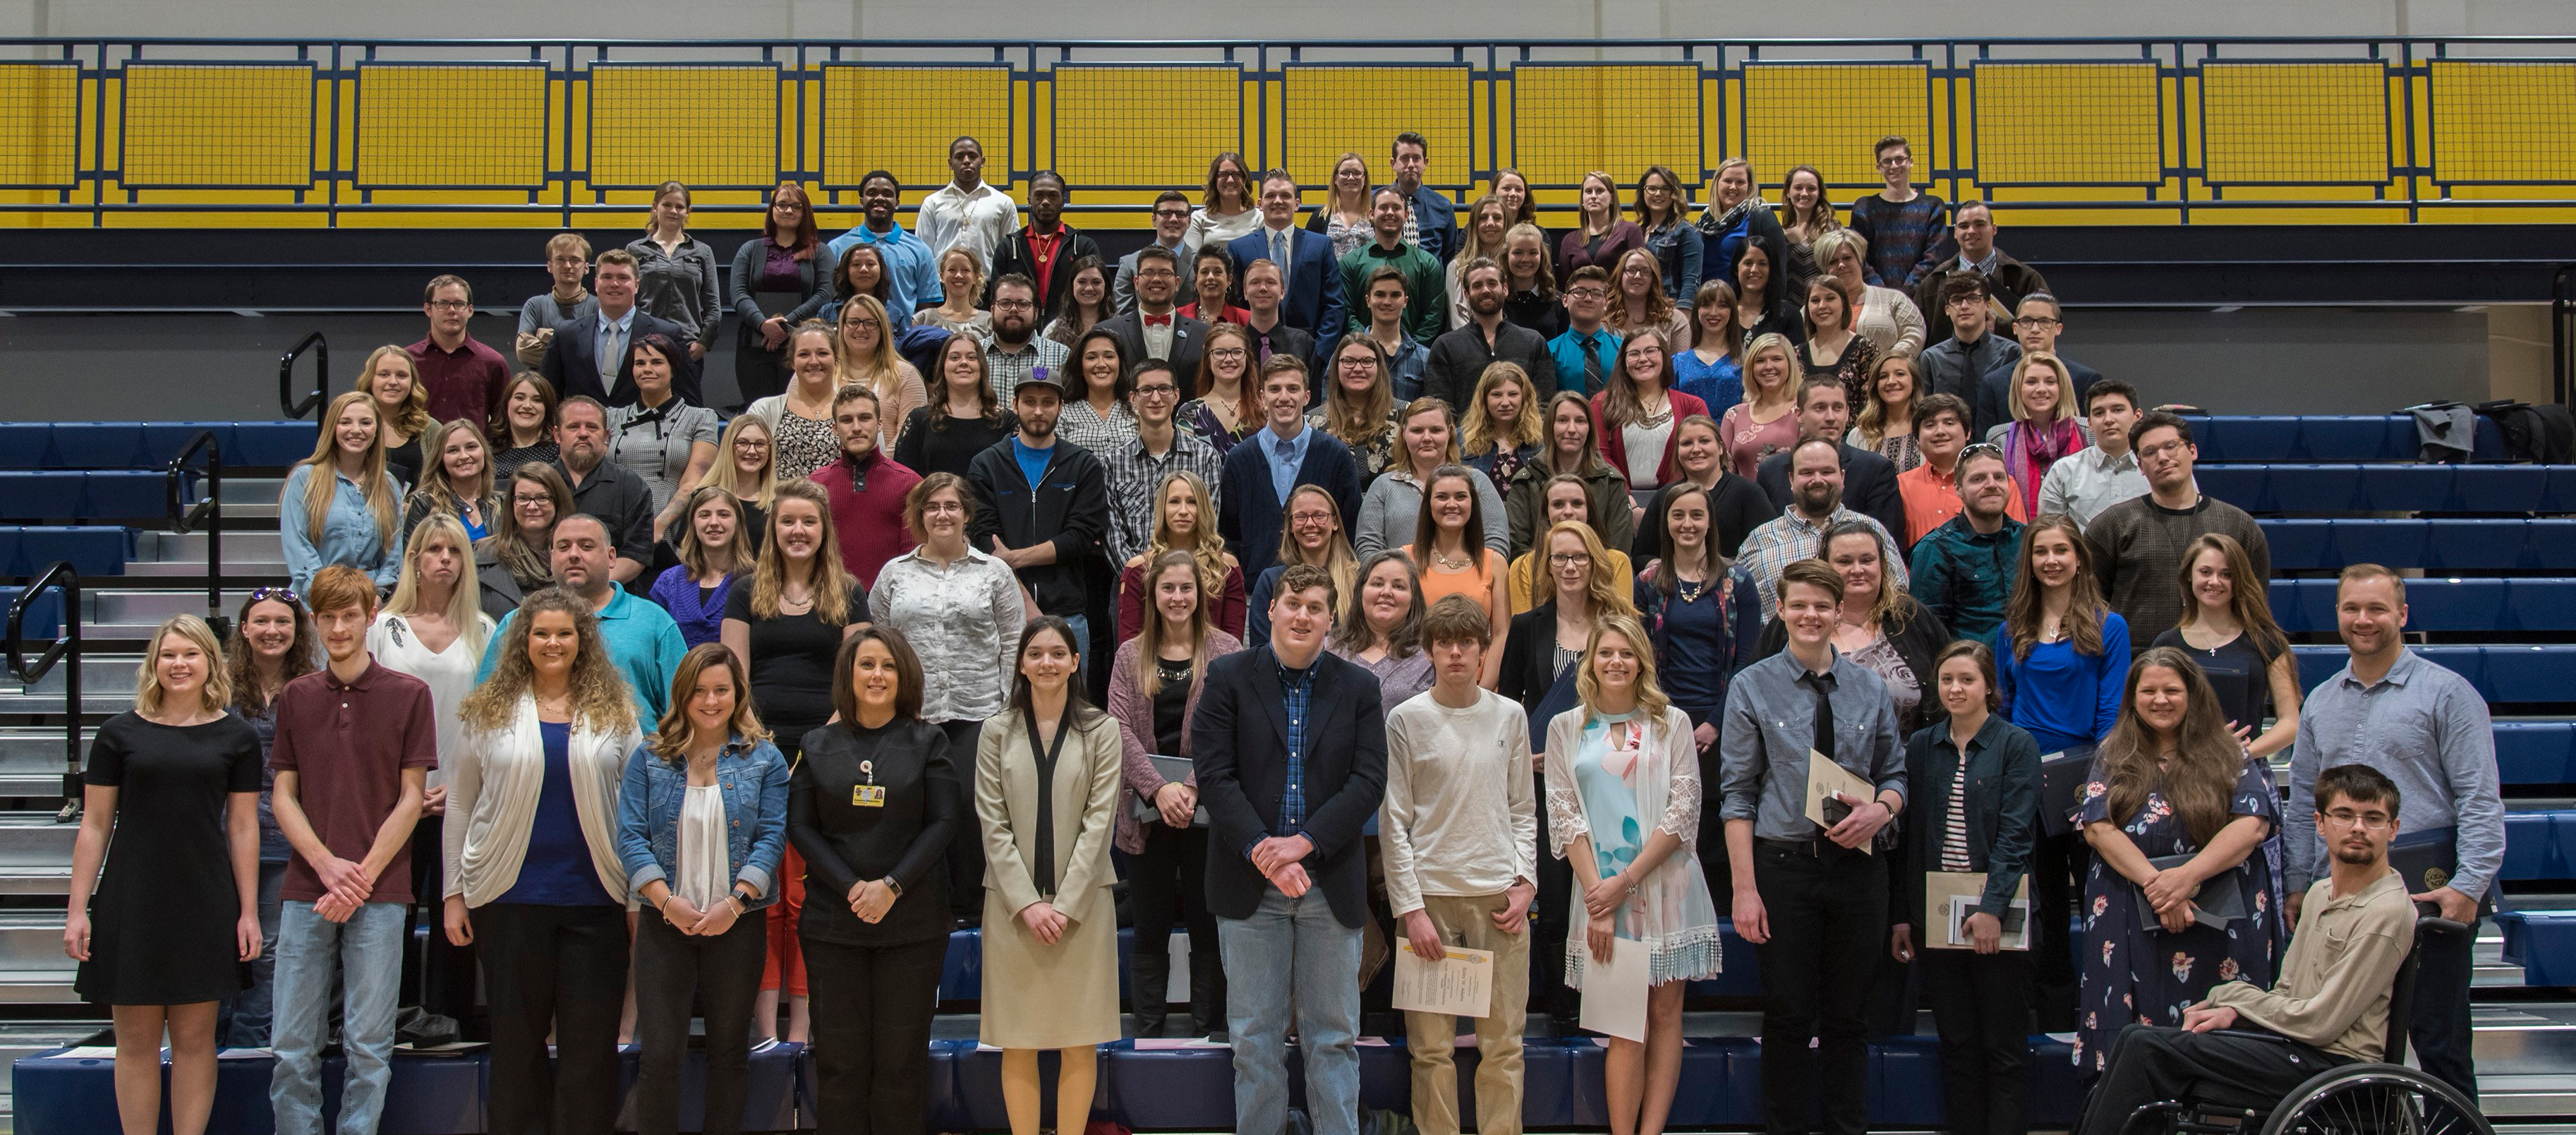 St. Clair County Community College honors 150 students with awards and recognition